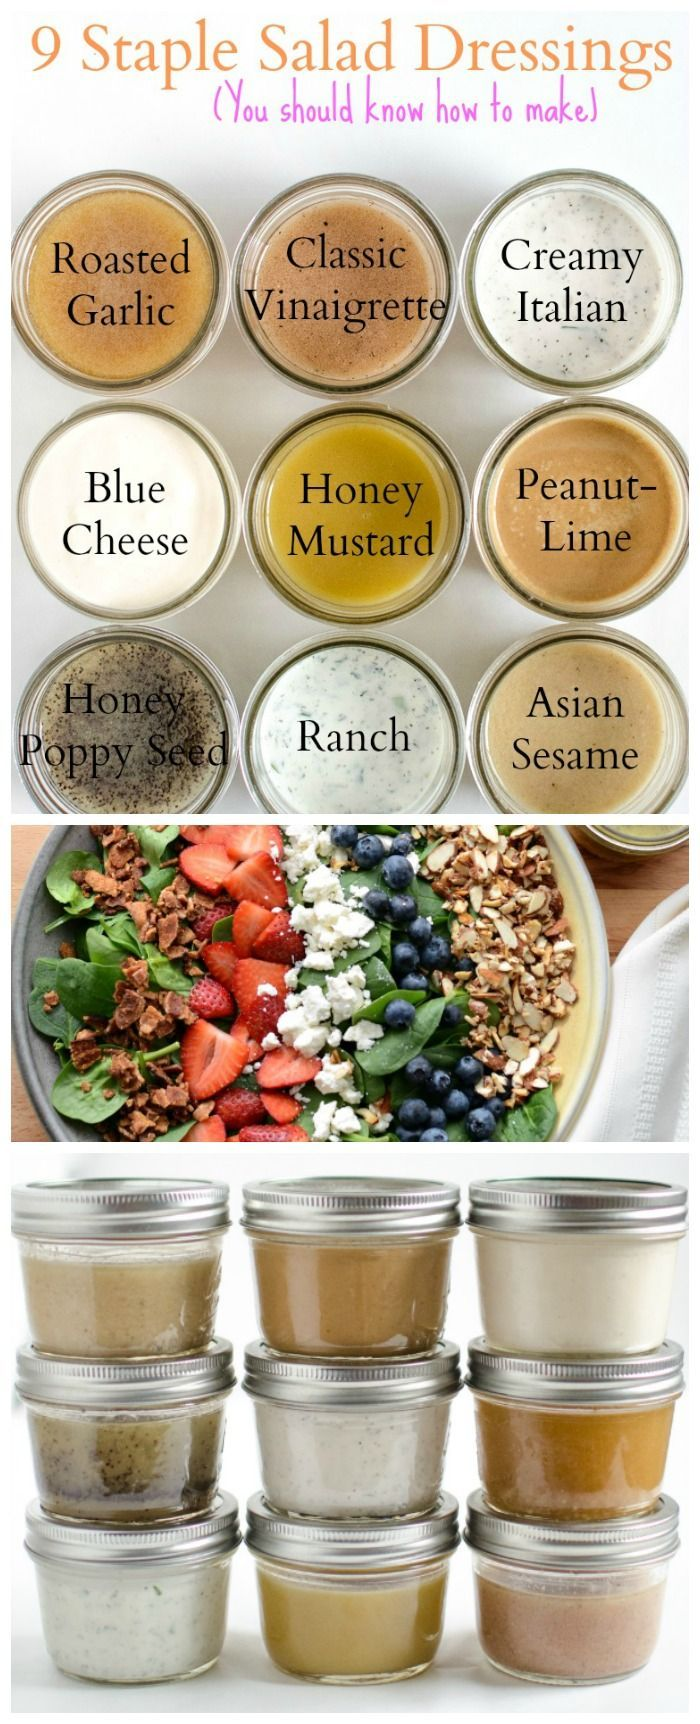 9 staple salad dressings #DIY #veggielove